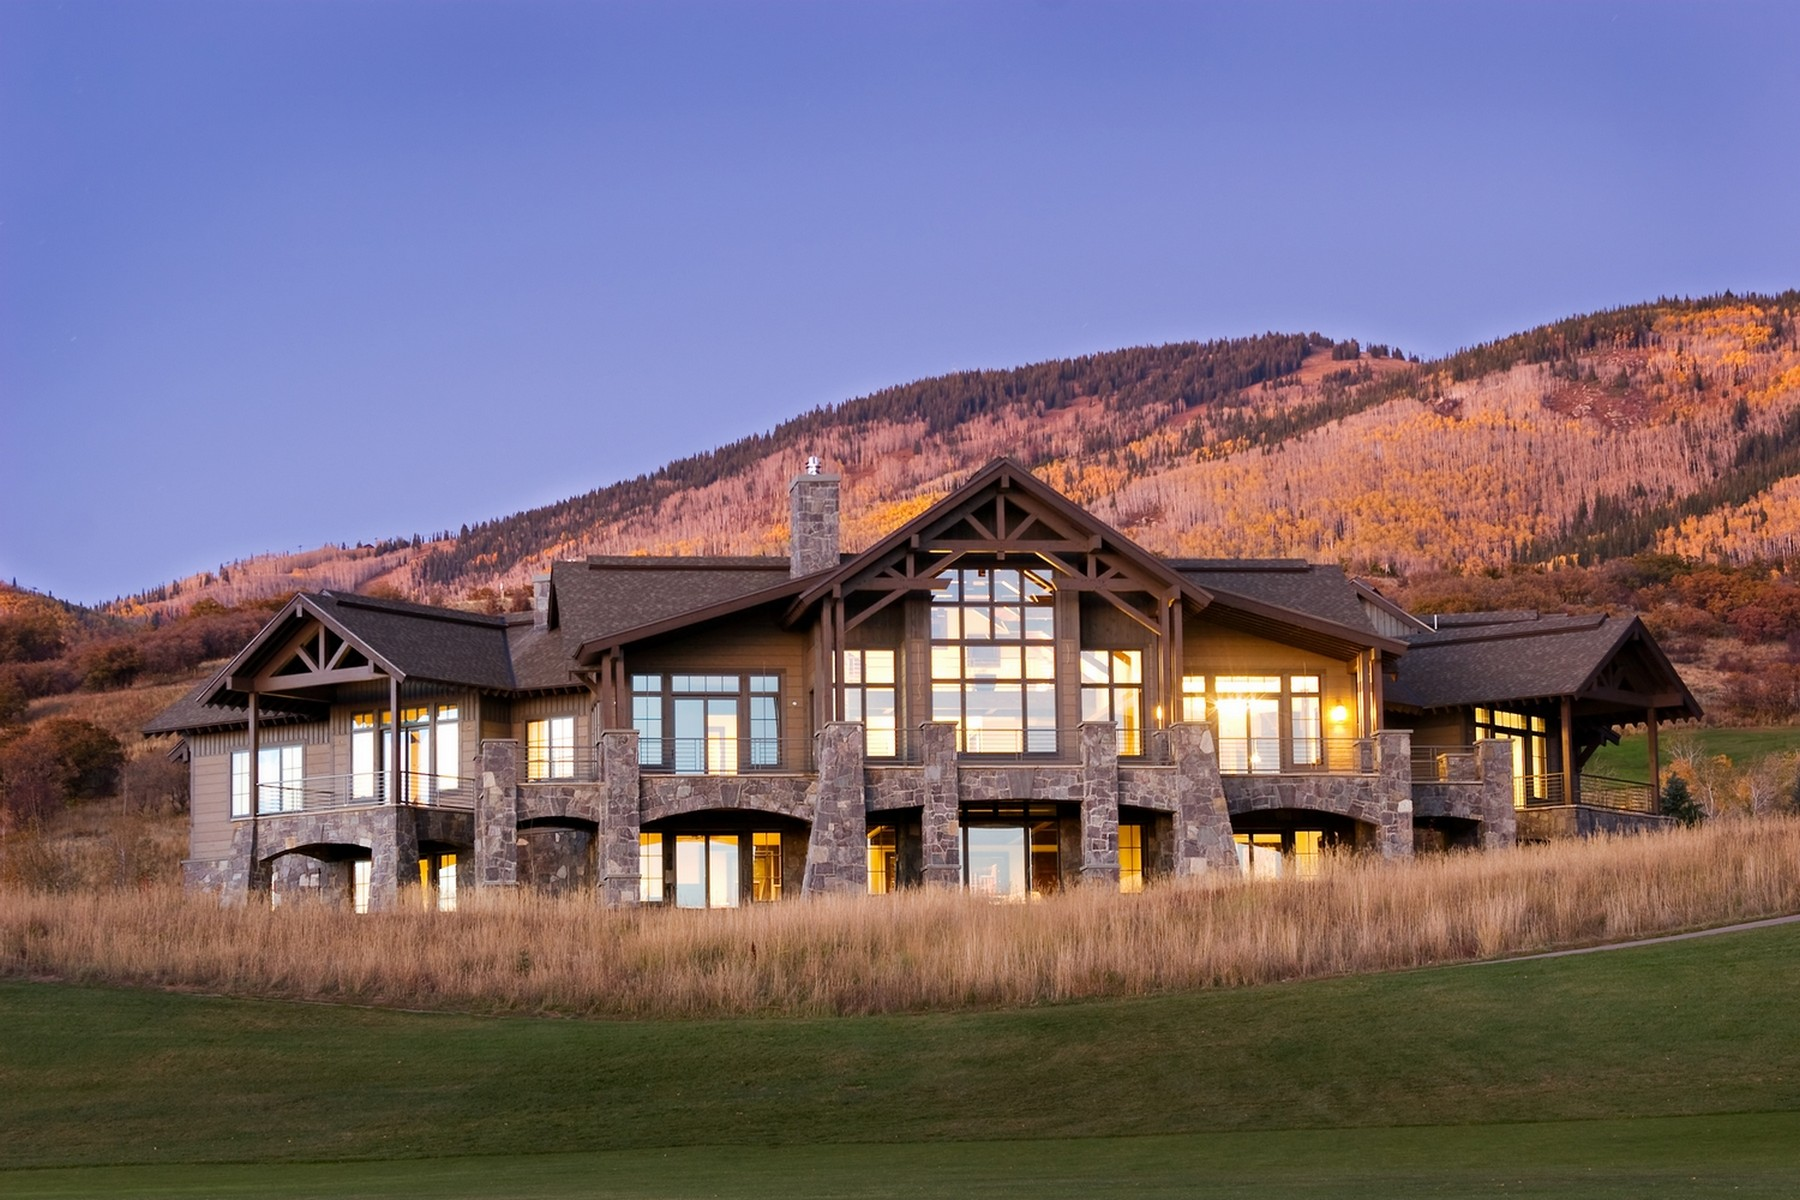 Casa Unifamiliar por un Venta en 33560 Catamount Drive South Valley, Steamboat Springs, Colorado, 80487 Estados Unidos